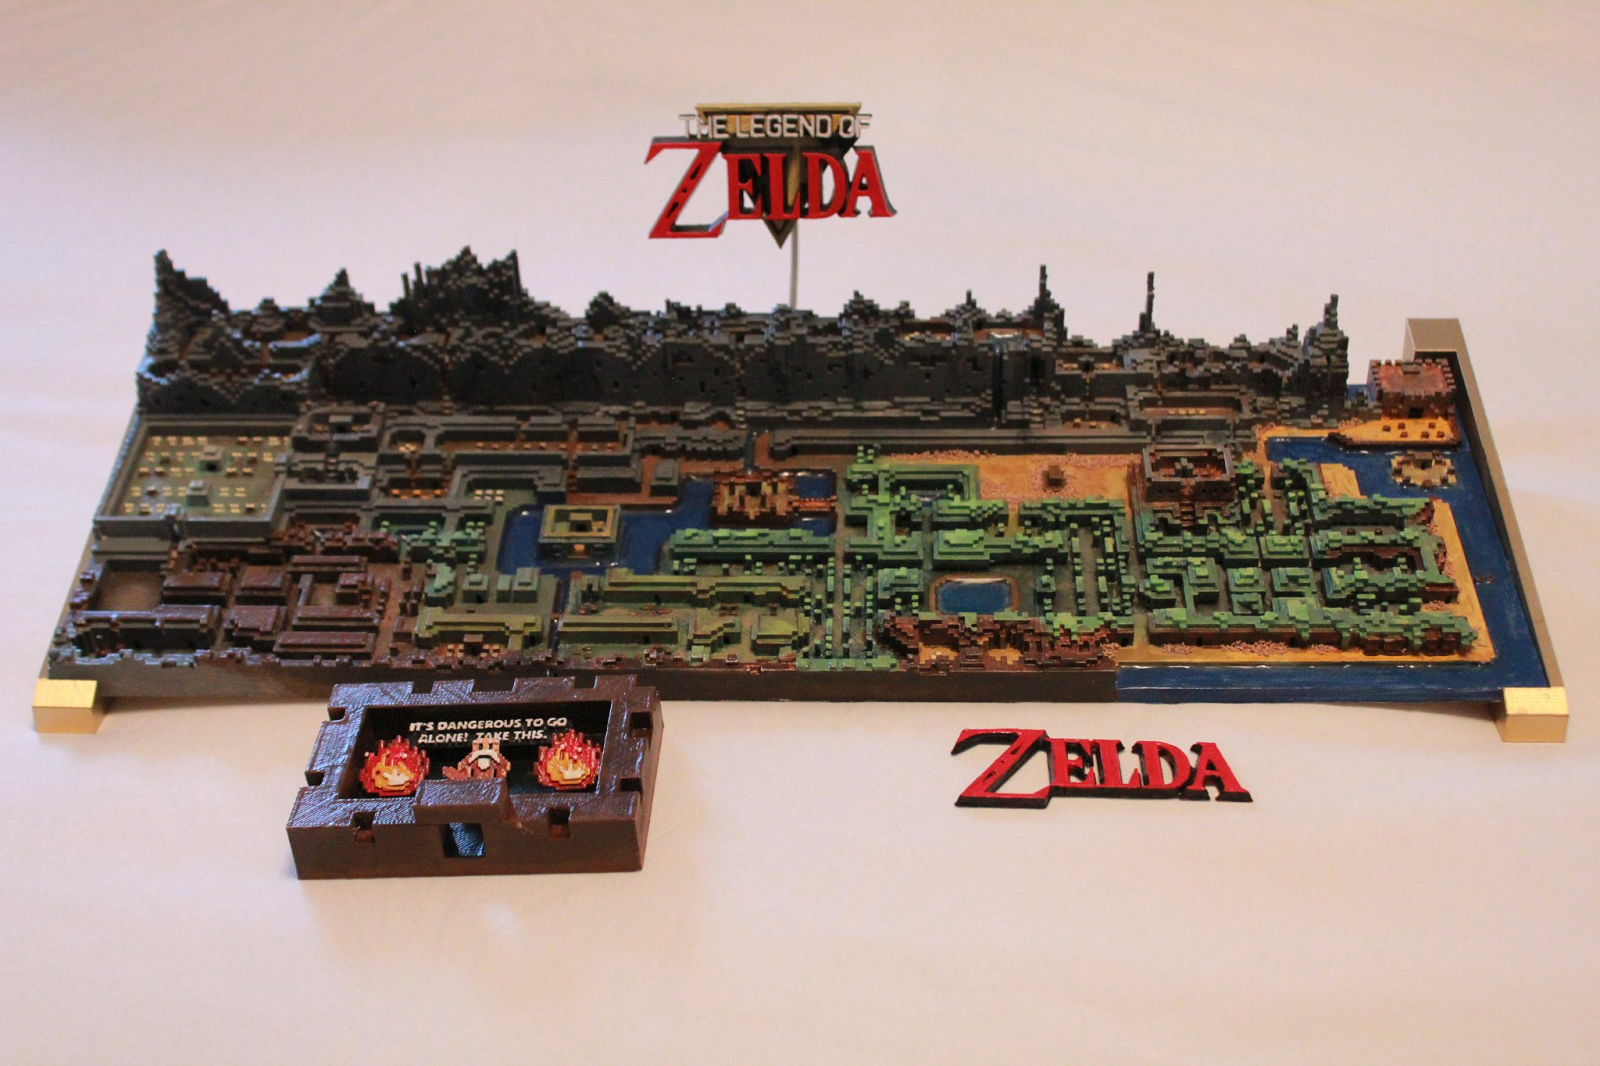 This is a picture of Punchy Legend of Zelda Nes Map Labeled